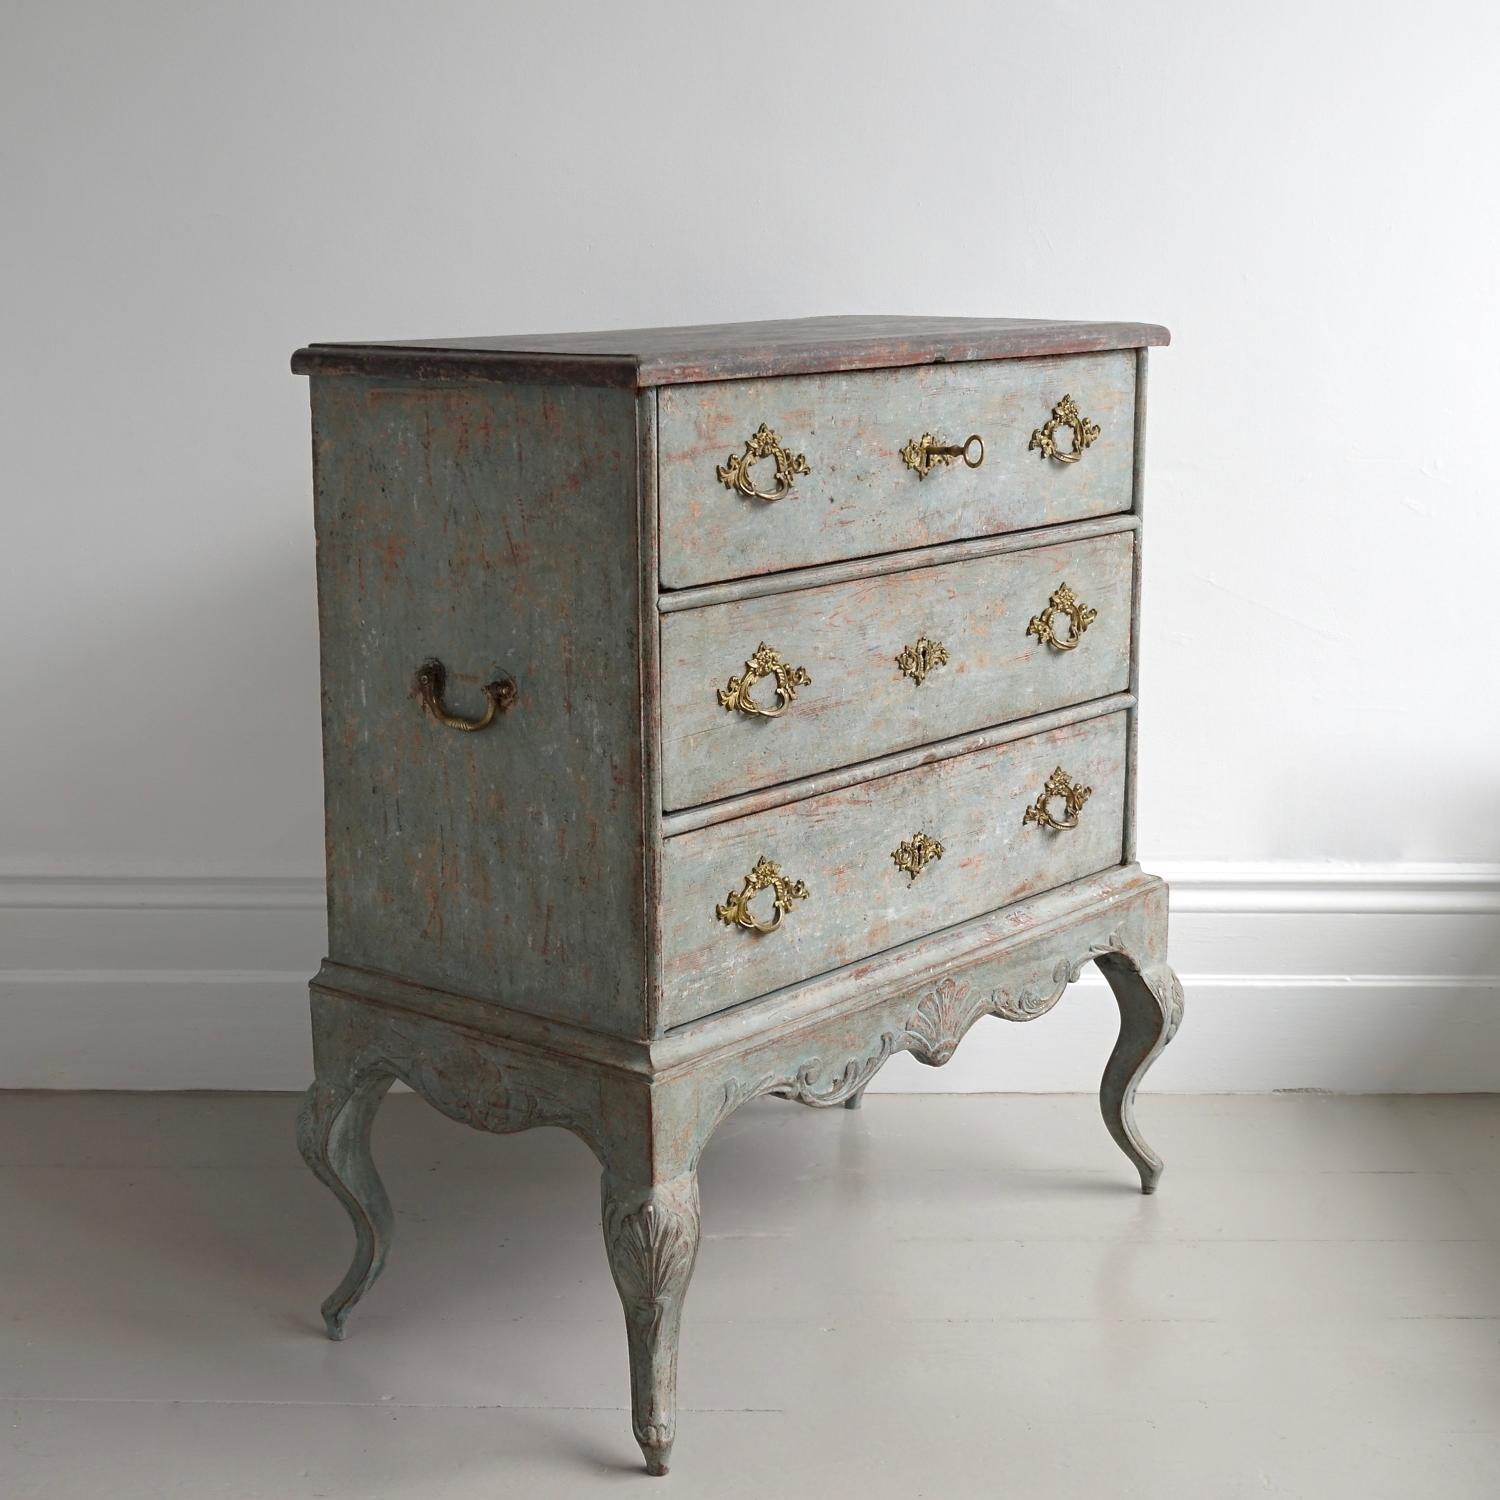 BEAUTIFUL ROCOCO CHEST IN ORIGINAL COLOUR